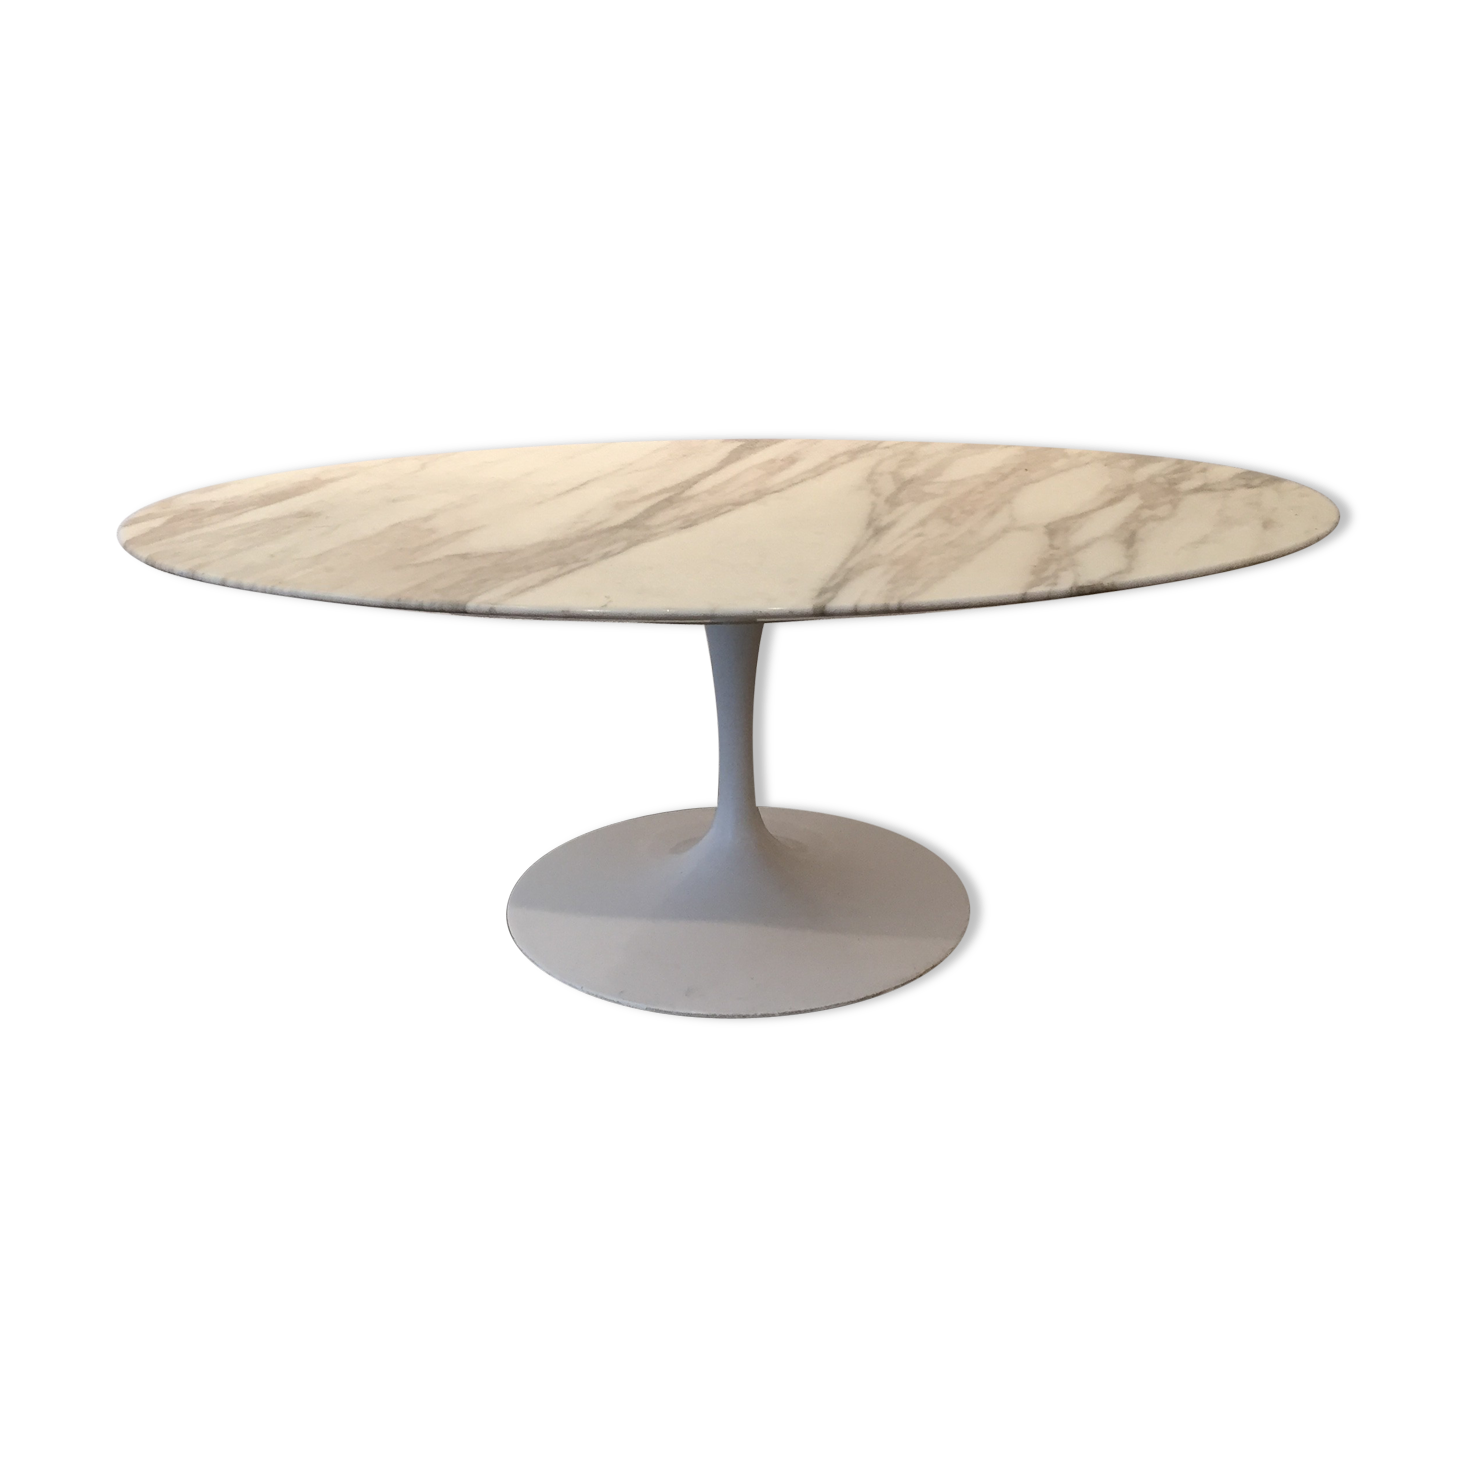 table basse marbre knoll perfect table basse marbre knoll awesome saarinen tulip table basse. Black Bedroom Furniture Sets. Home Design Ideas